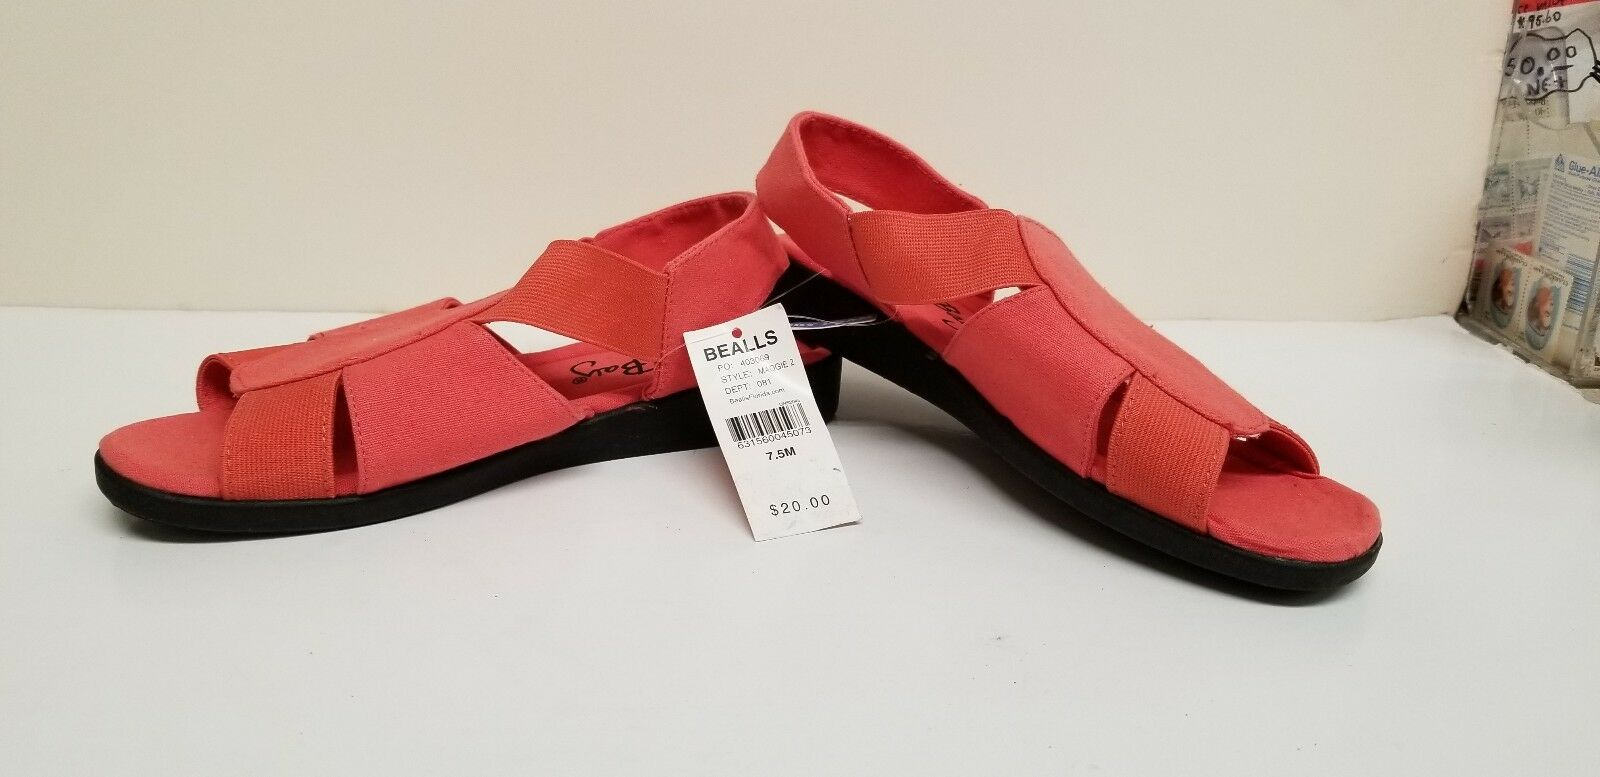 WOMENS SHOES-CORAL FOAM-CORAL-SIZE BAY ELASTIC STRAPPY SANDALS-MEMORY FOAM-CORAL-SIZE SHOES-CORAL 6.5M-NEW 9442e9